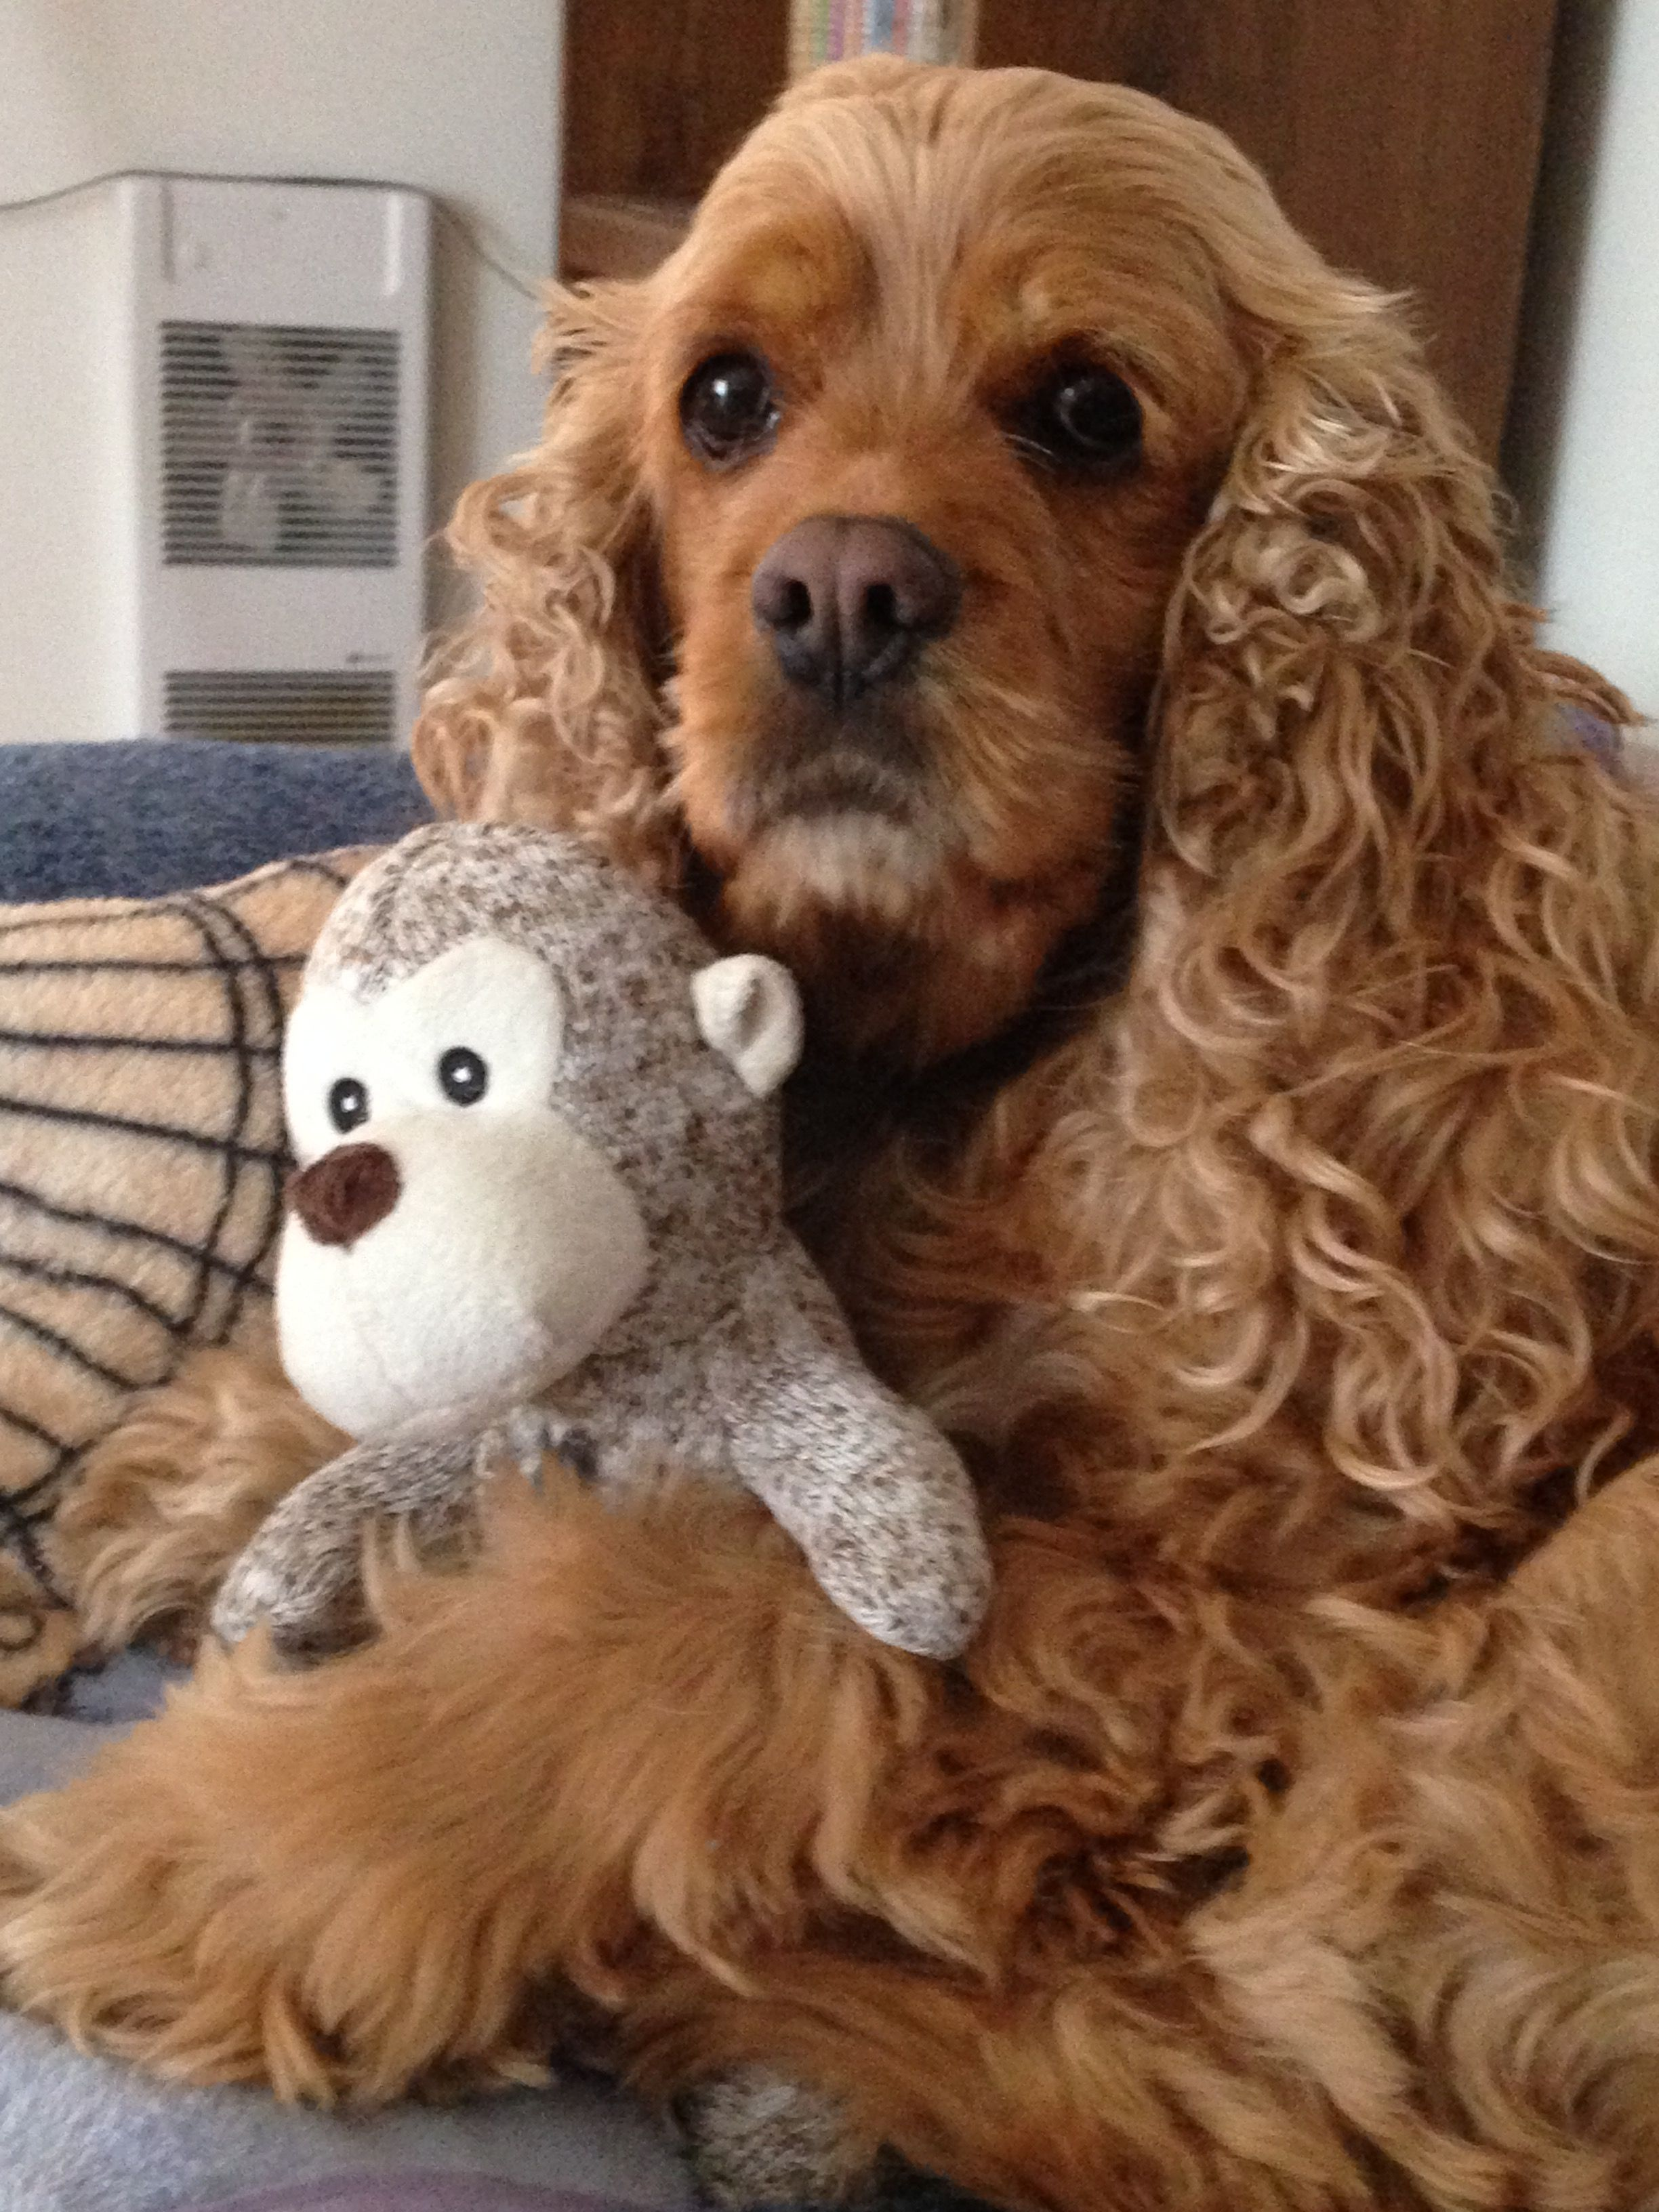 Pin by Debbie Trakas on Cocker spaniels Dogs and puppies